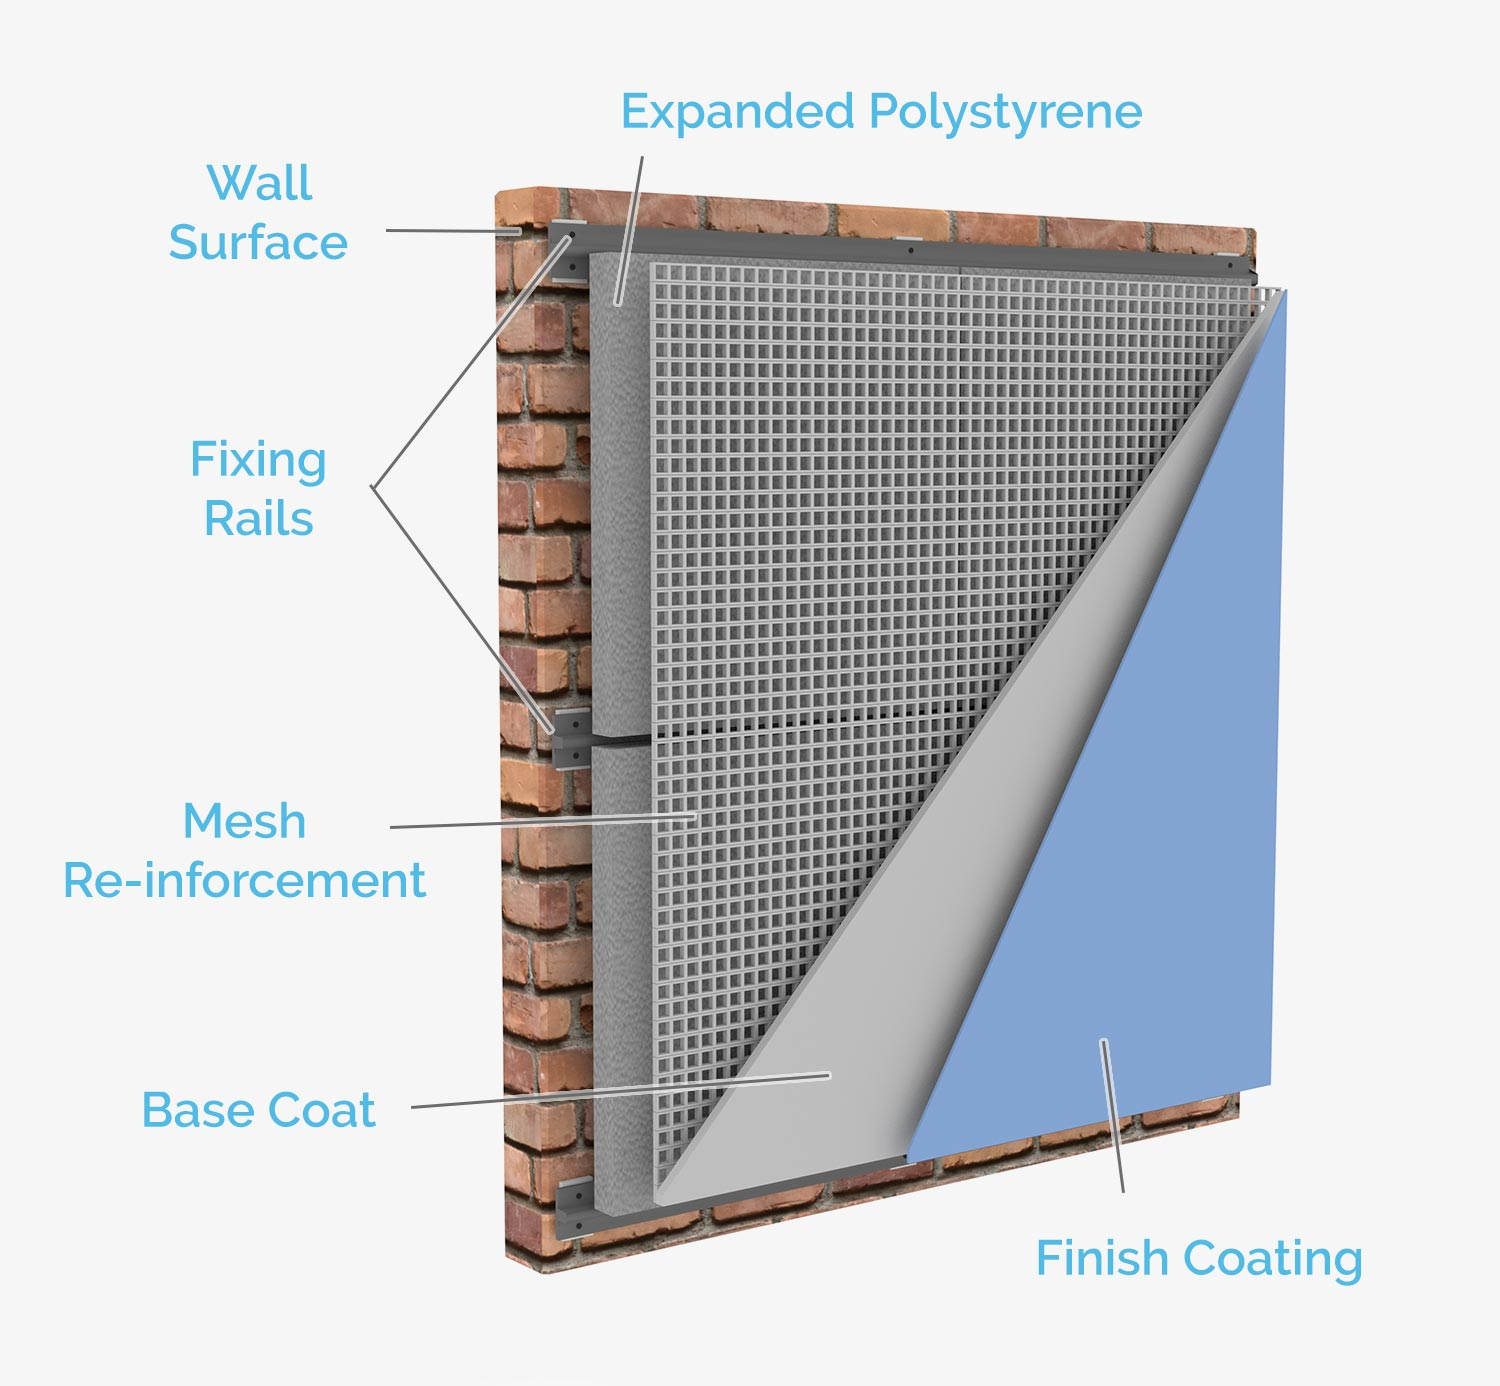 S and B EPS - external wall insulation system